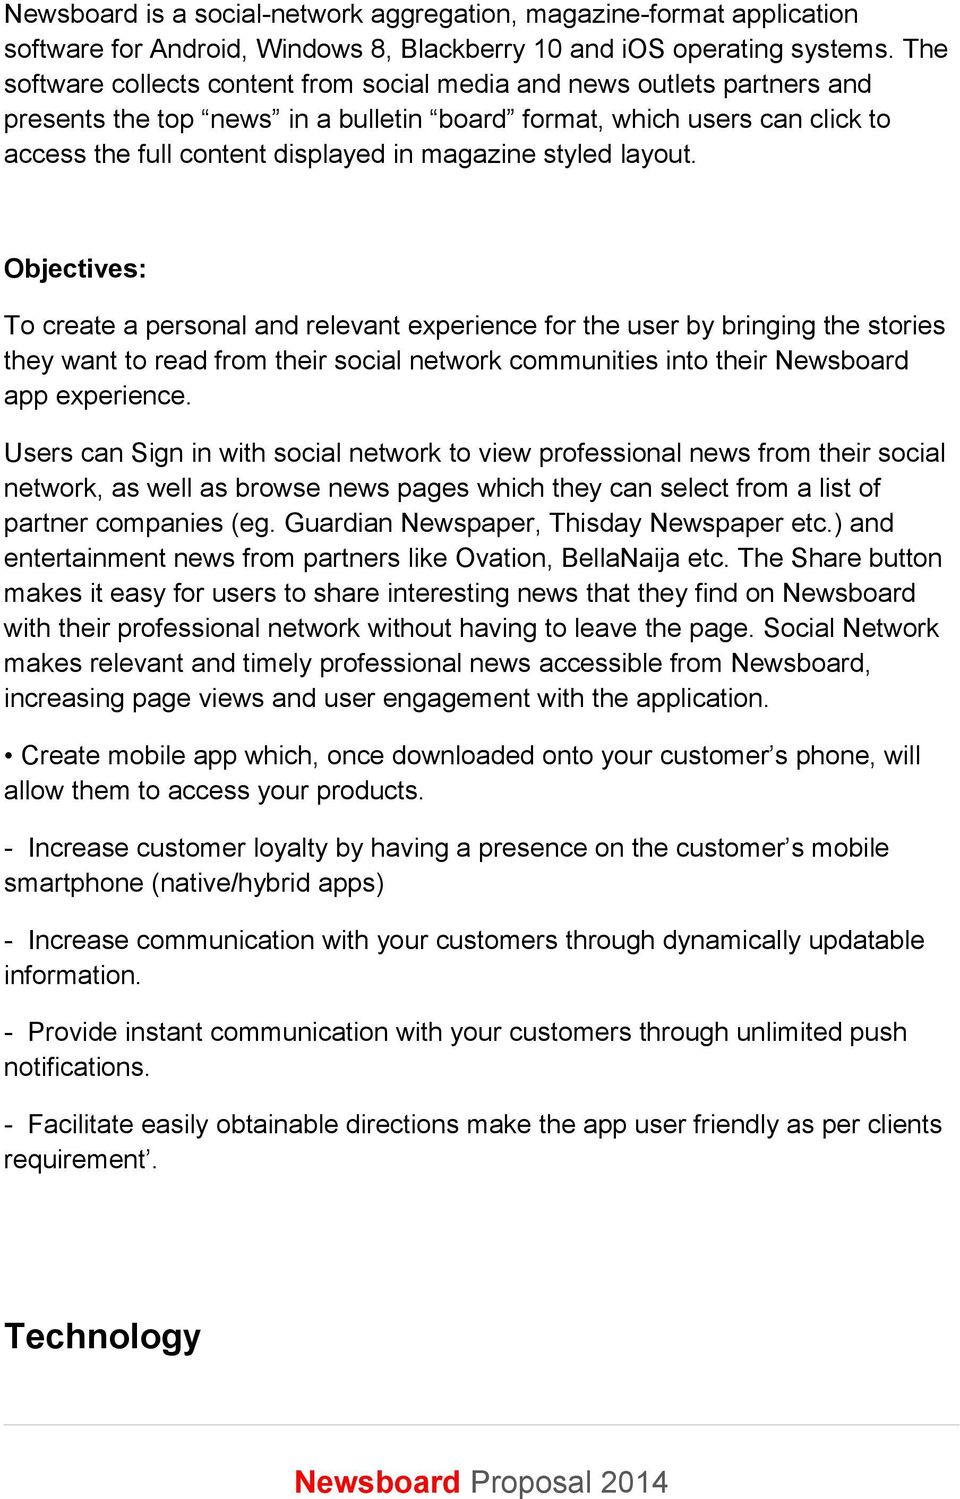 Mobile App Proposal Magazine company- January 12, y  Direct Contact